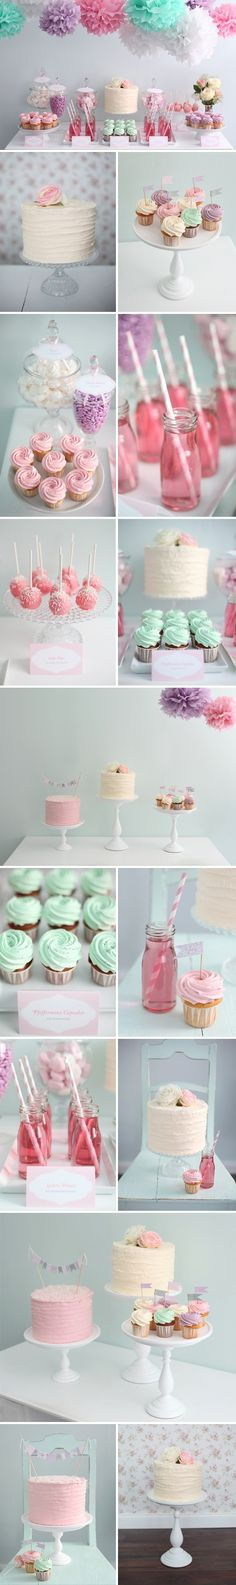 Best cupcakes ideas for baby shower girl birthday parties Ideas Baby Birthday, First Birthday Parties, 1st Birthdays, Birthday Table, Birthday Ideas, Birthday Cupcakes, Party Cupcakes, Girl Cupcakes, Pastell Party